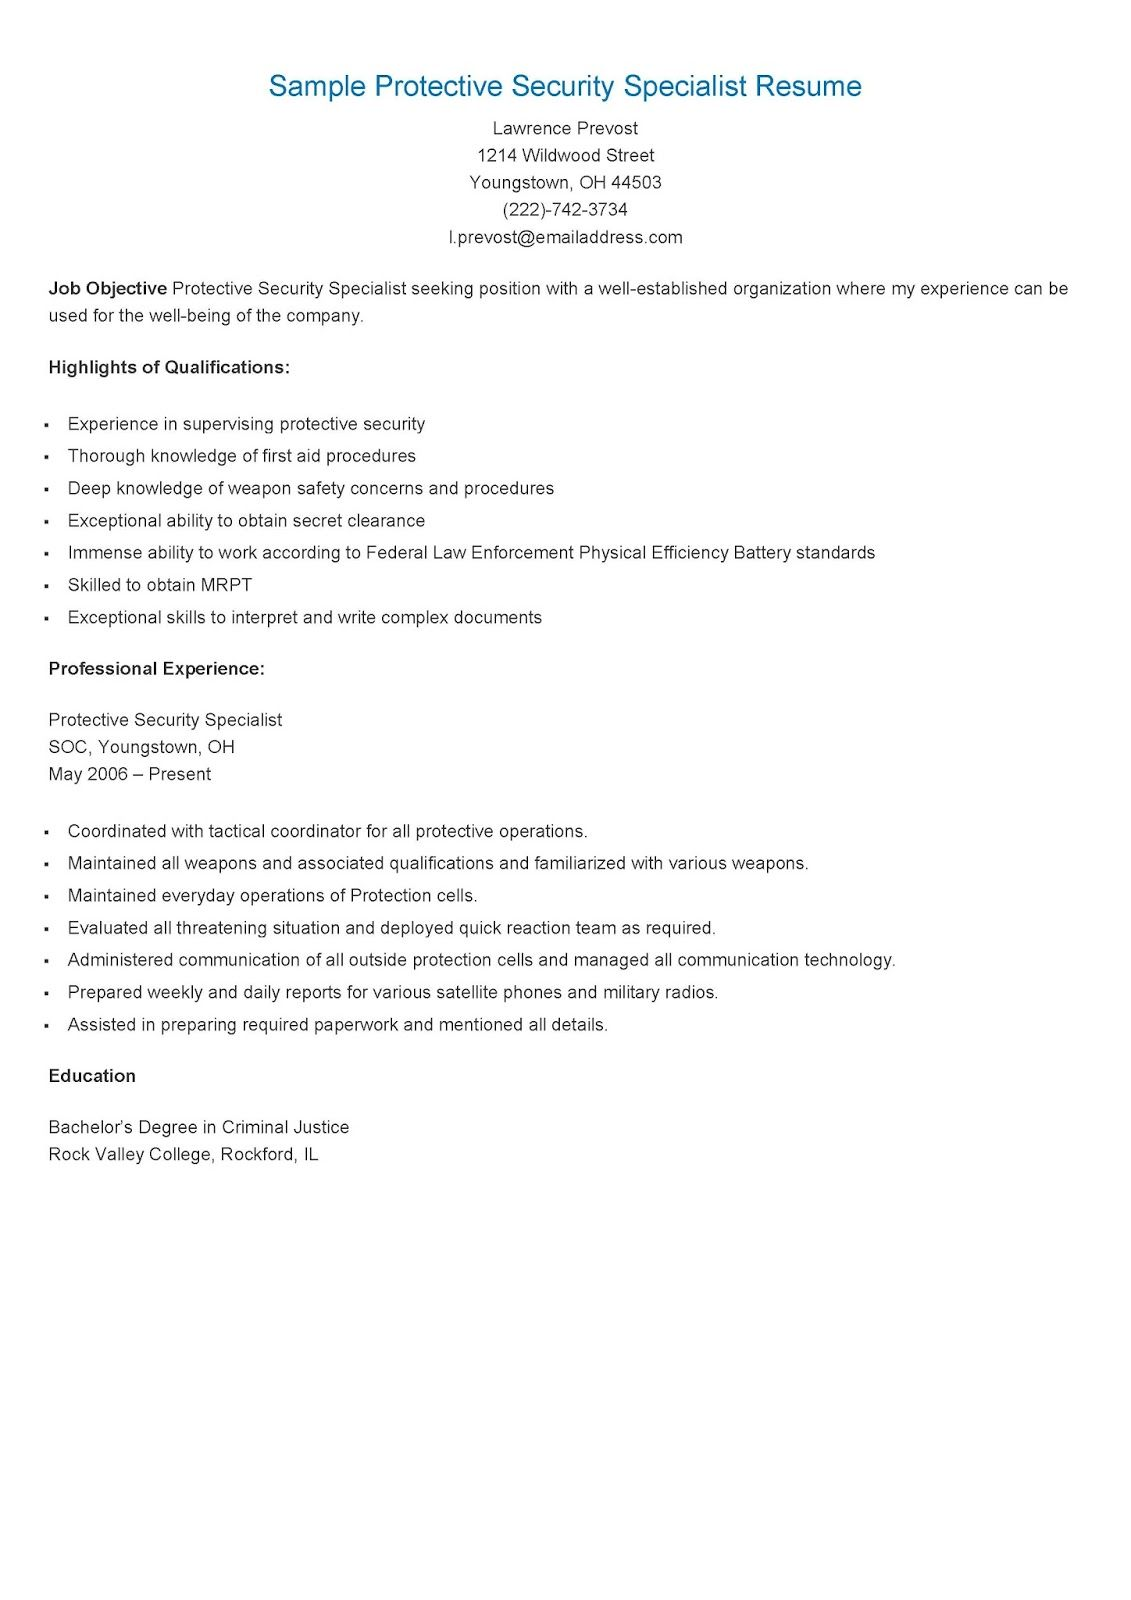 sample protective security specialist resume